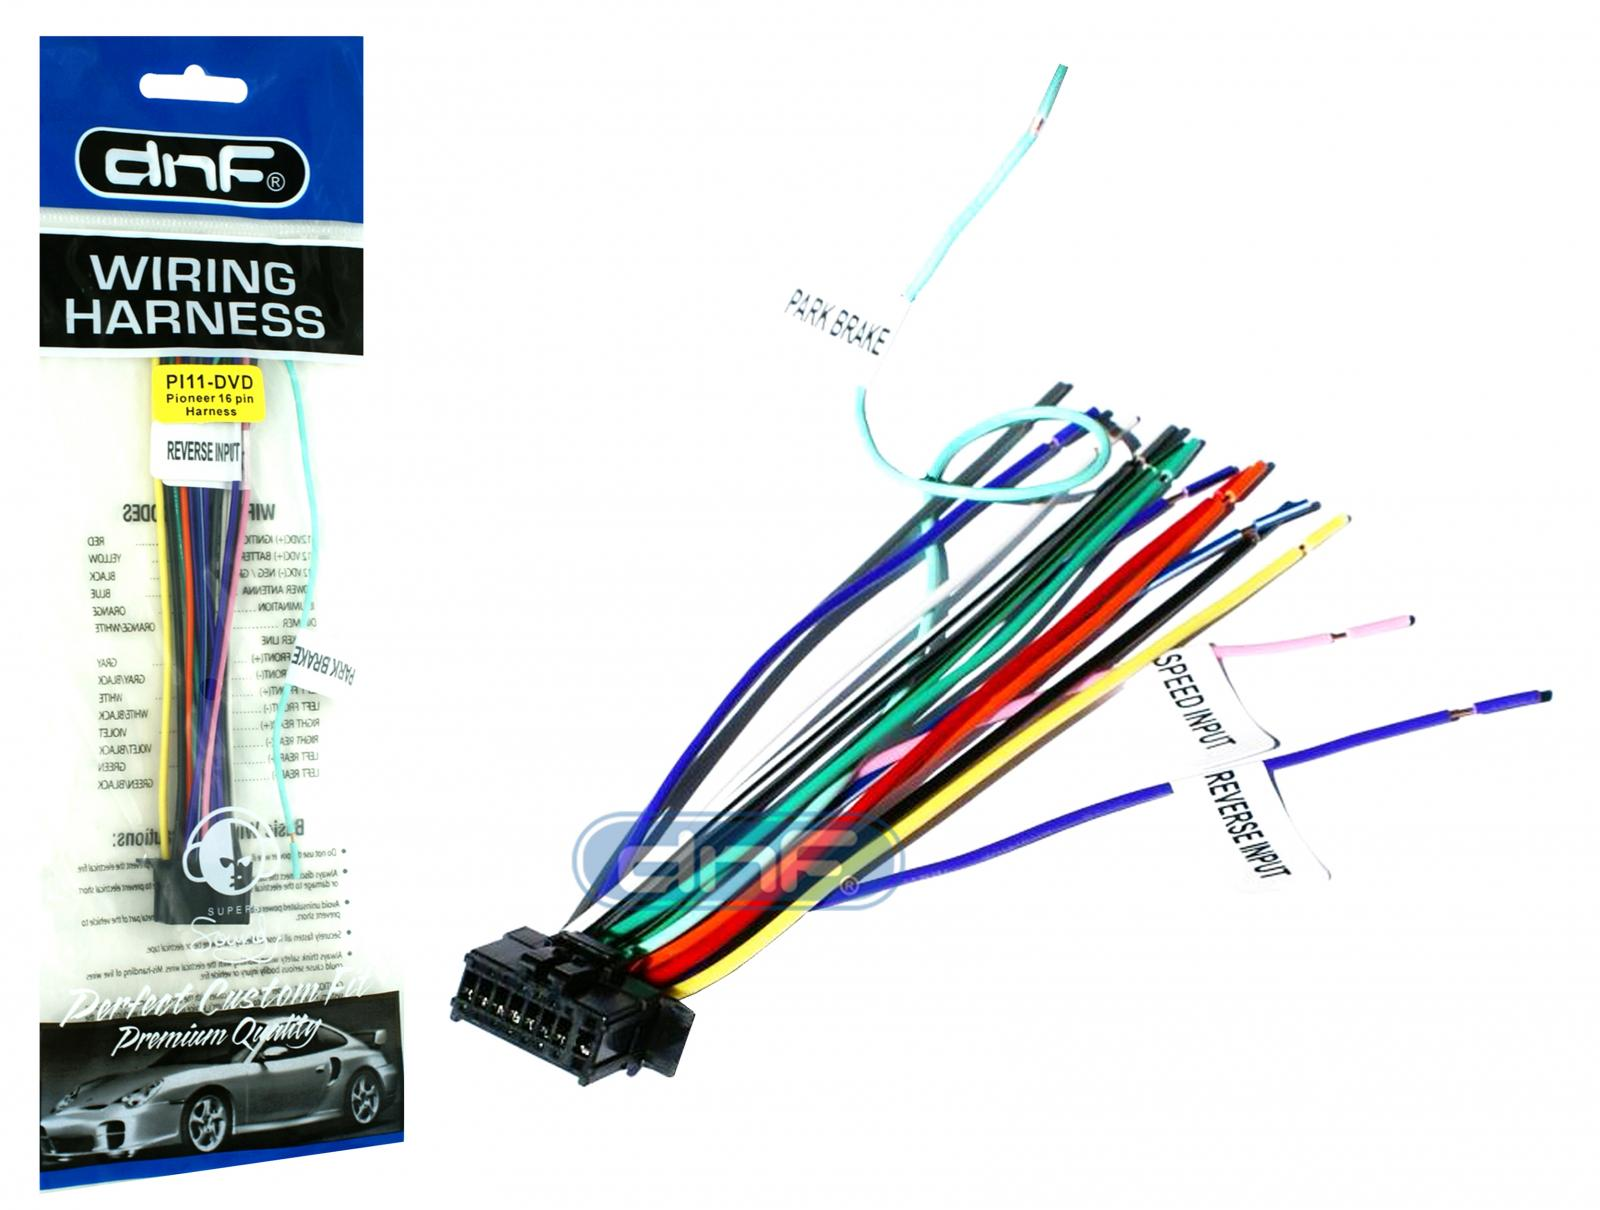 new pioneer wiring harness avh 170 dvd sm deh free same. Black Bedroom Furniture Sets. Home Design Ideas